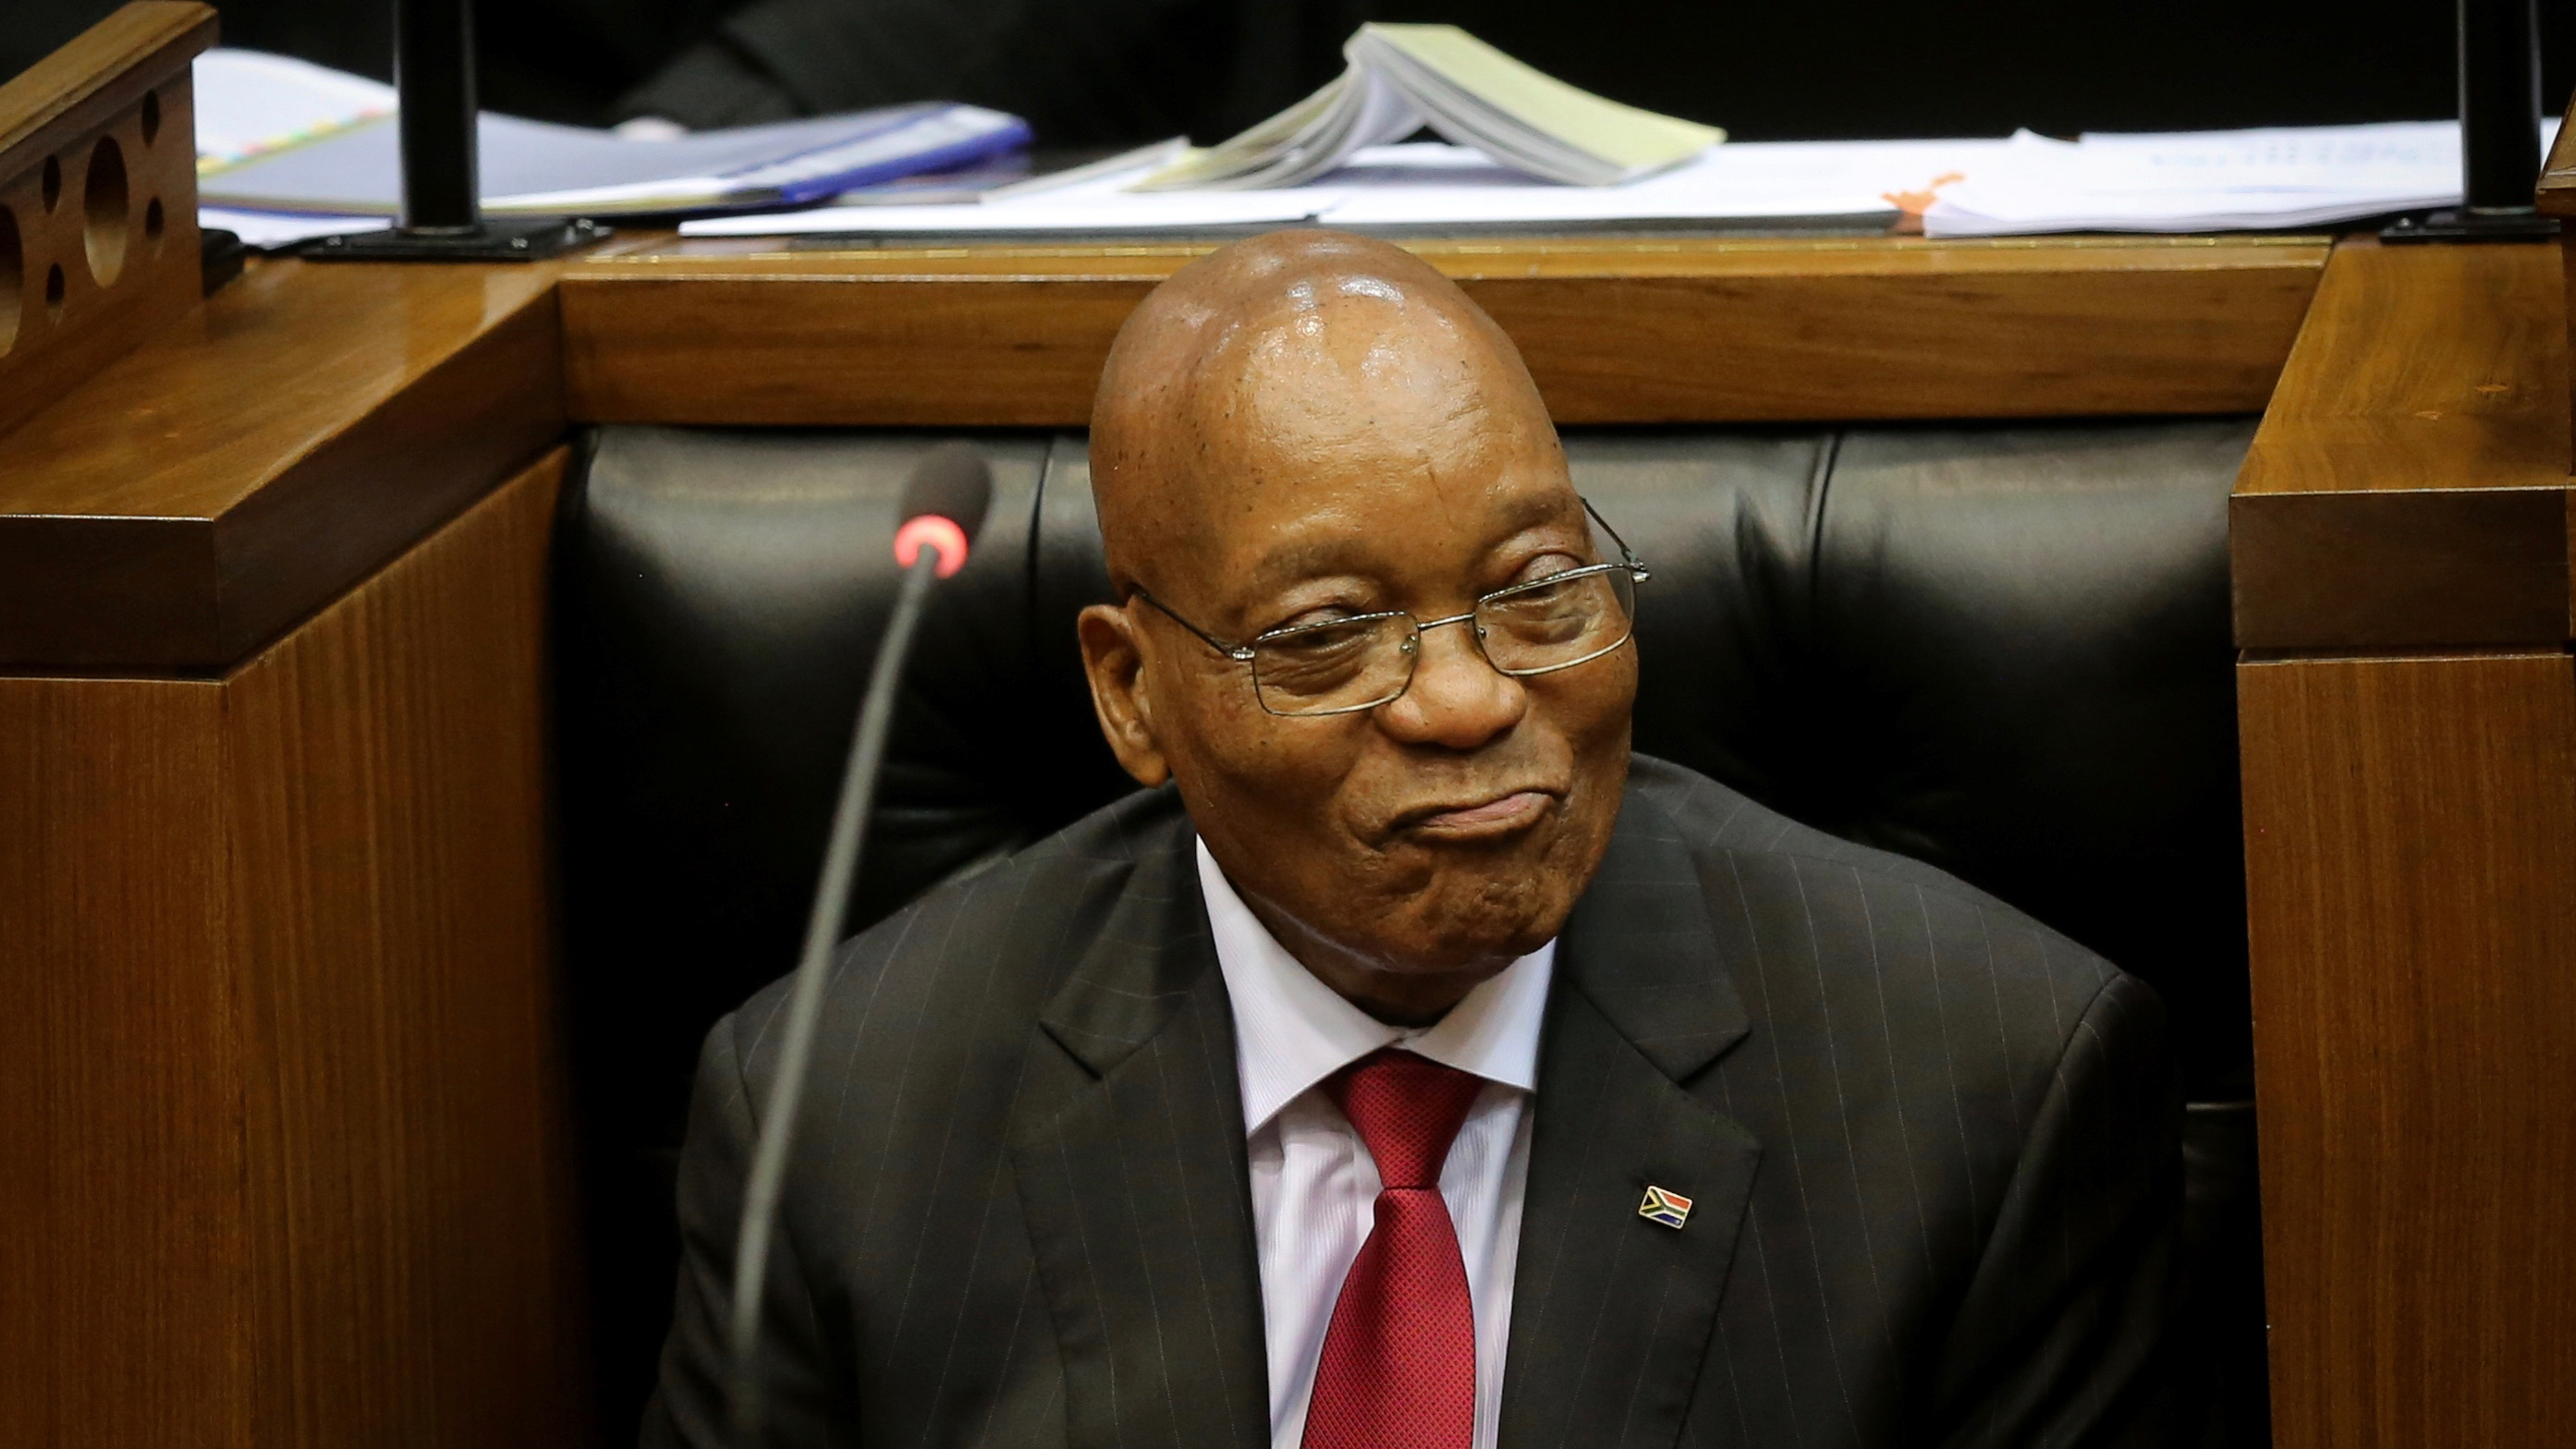 President Jacob Zuma during his State of the Nation Address (SONA) to a joint sitting of the National Assembly and the National Council of Provinces in Cape Town, South Africa February 9, 2017. REUTERS/Sumaya Hisham - RC1F1946B540